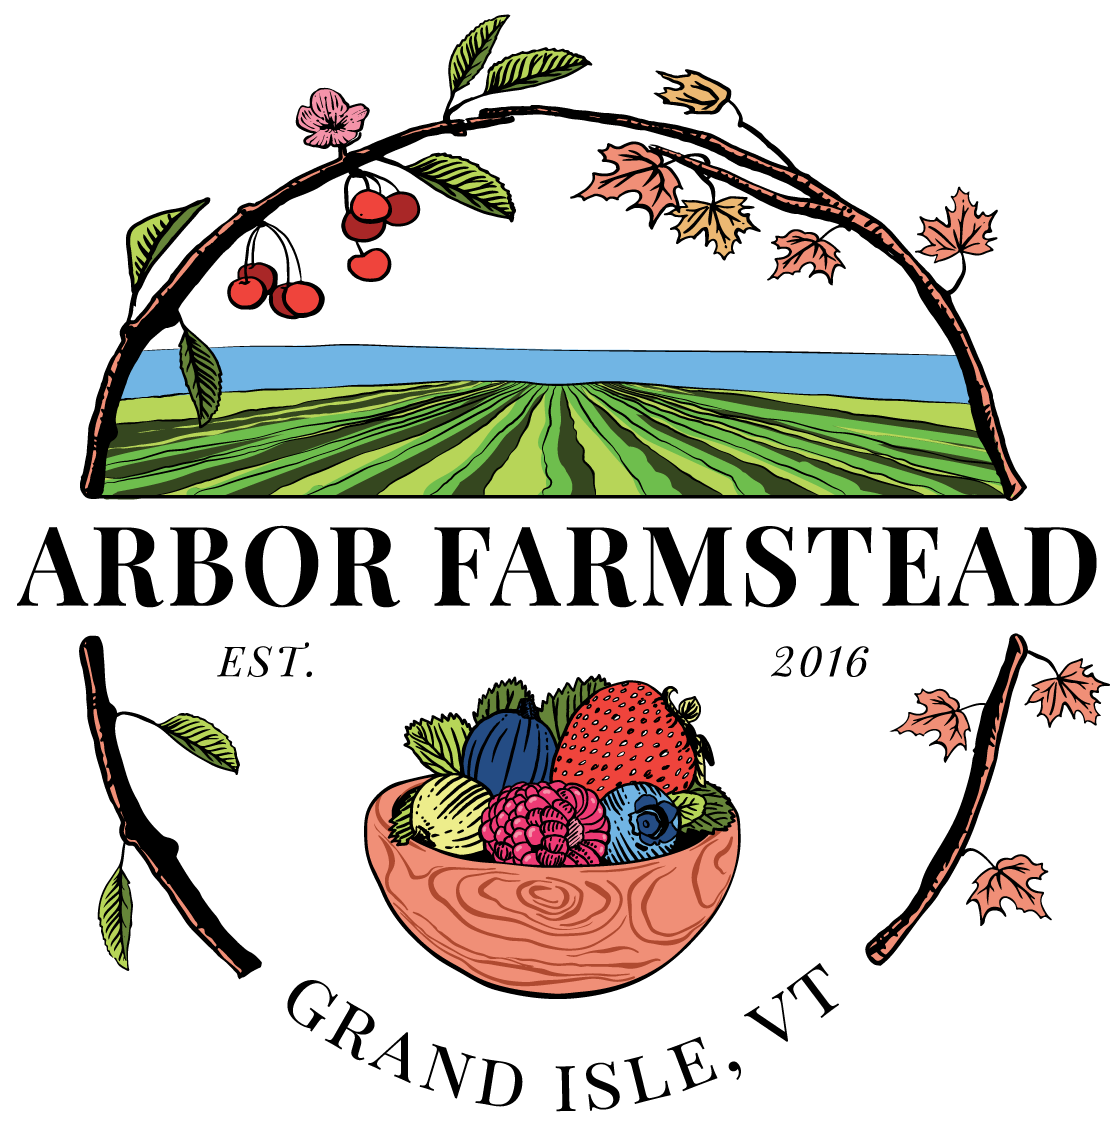 Arbor Farmstead